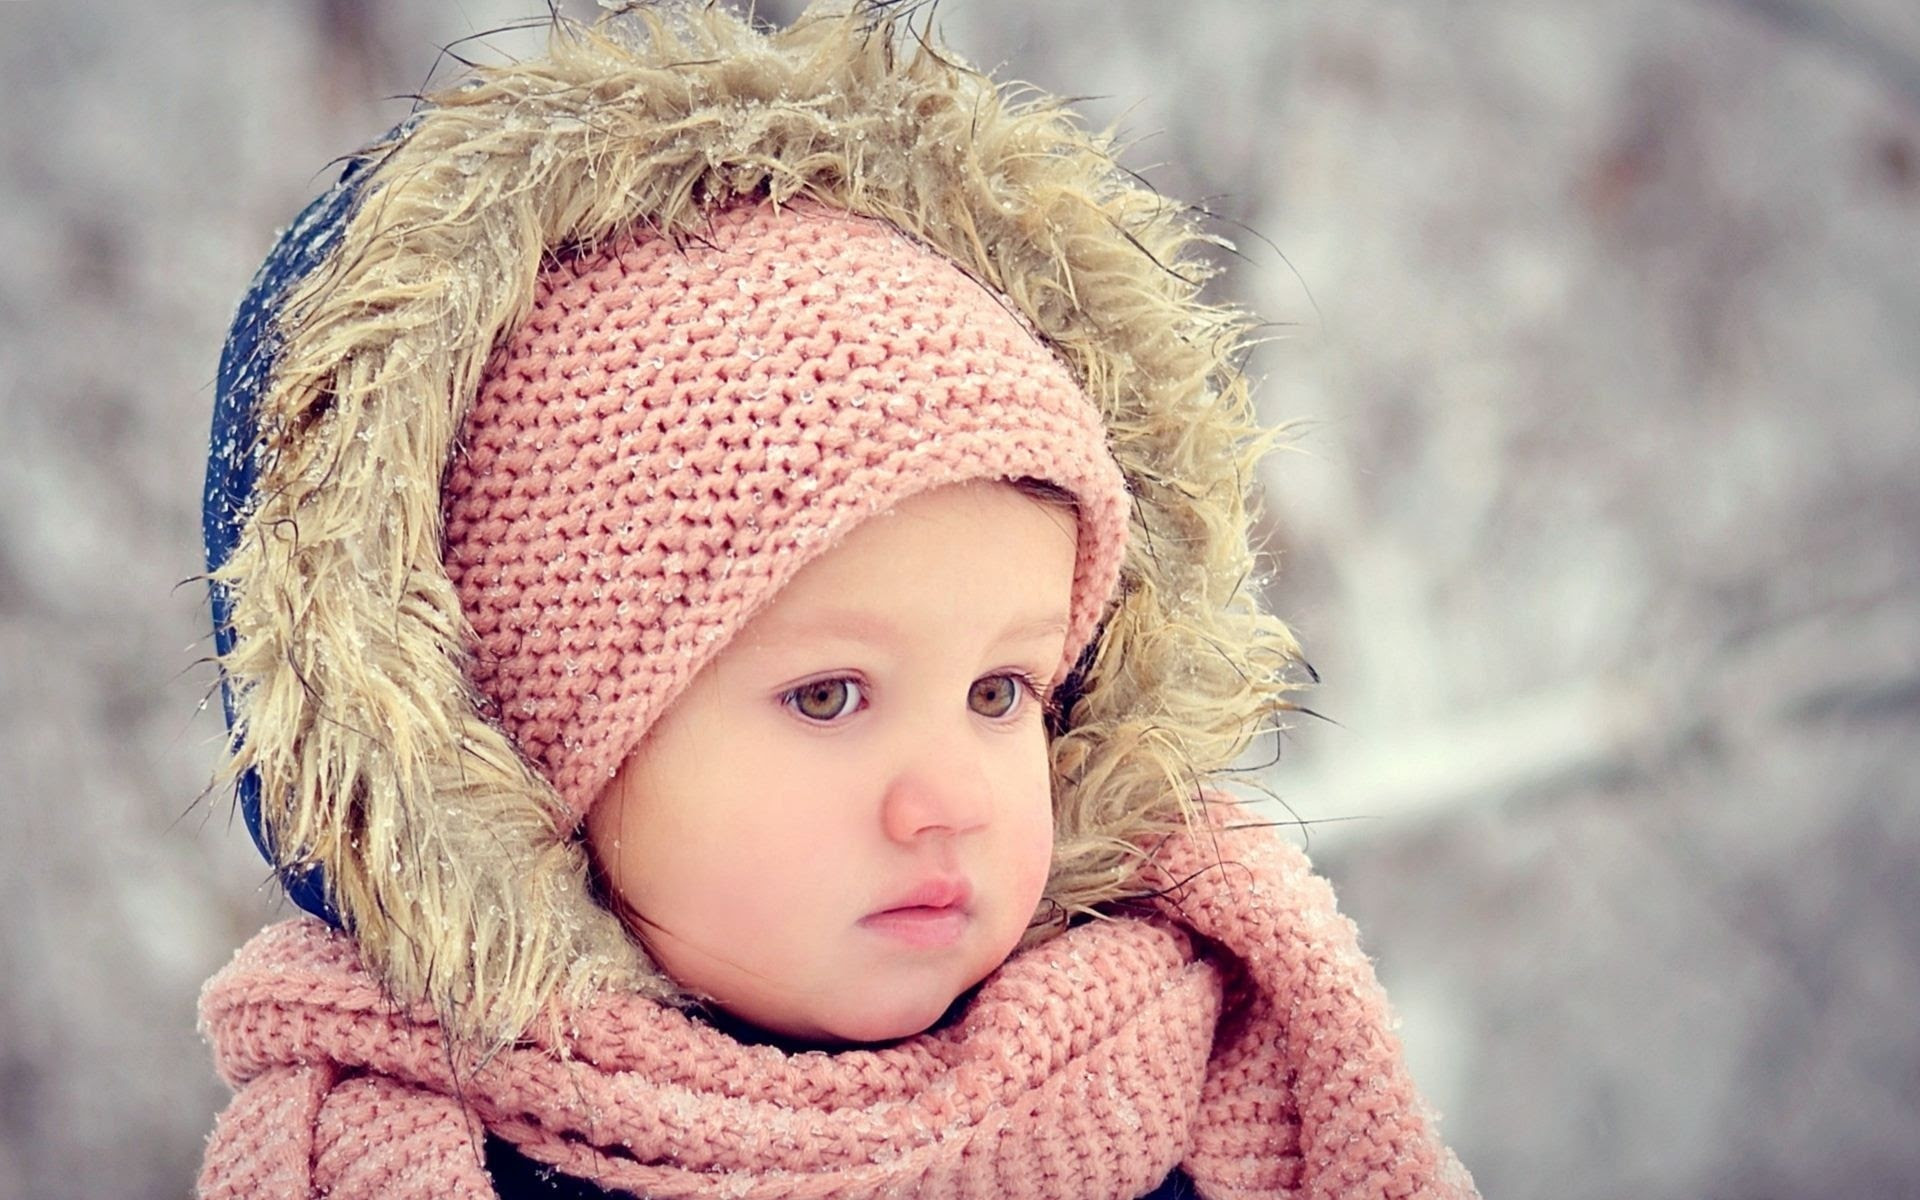 Very Cute Wallpapers 62 Images